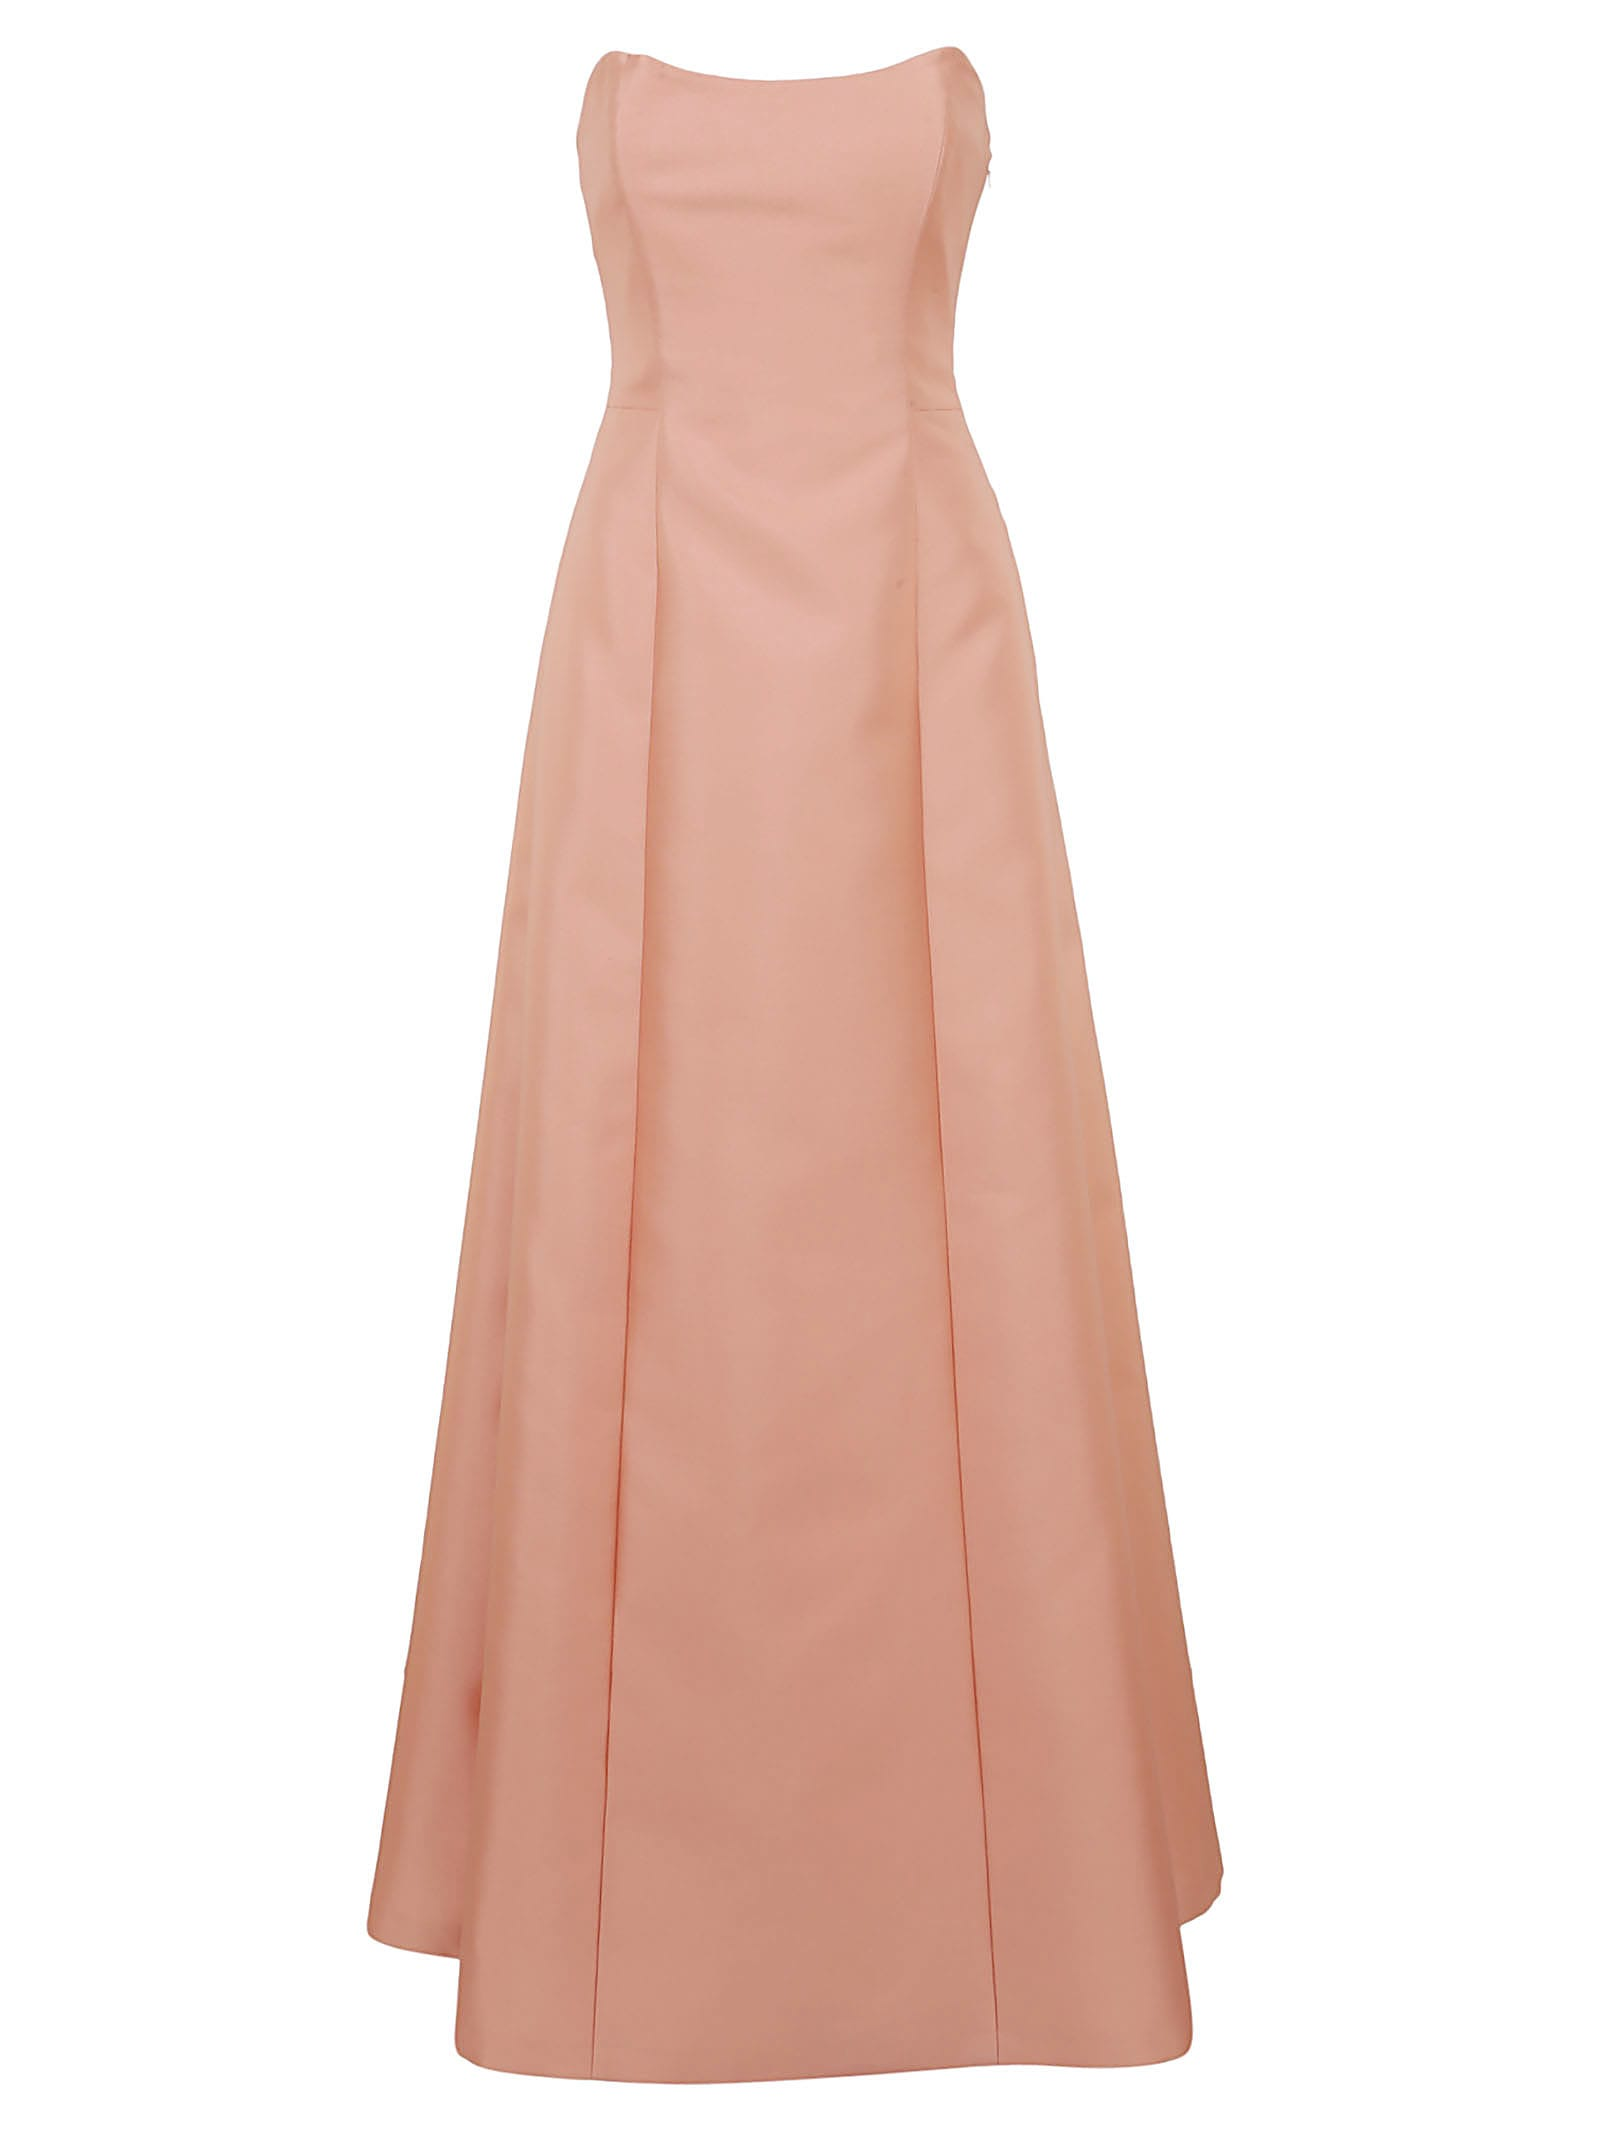 Alberta Ferretti High Waist Dress